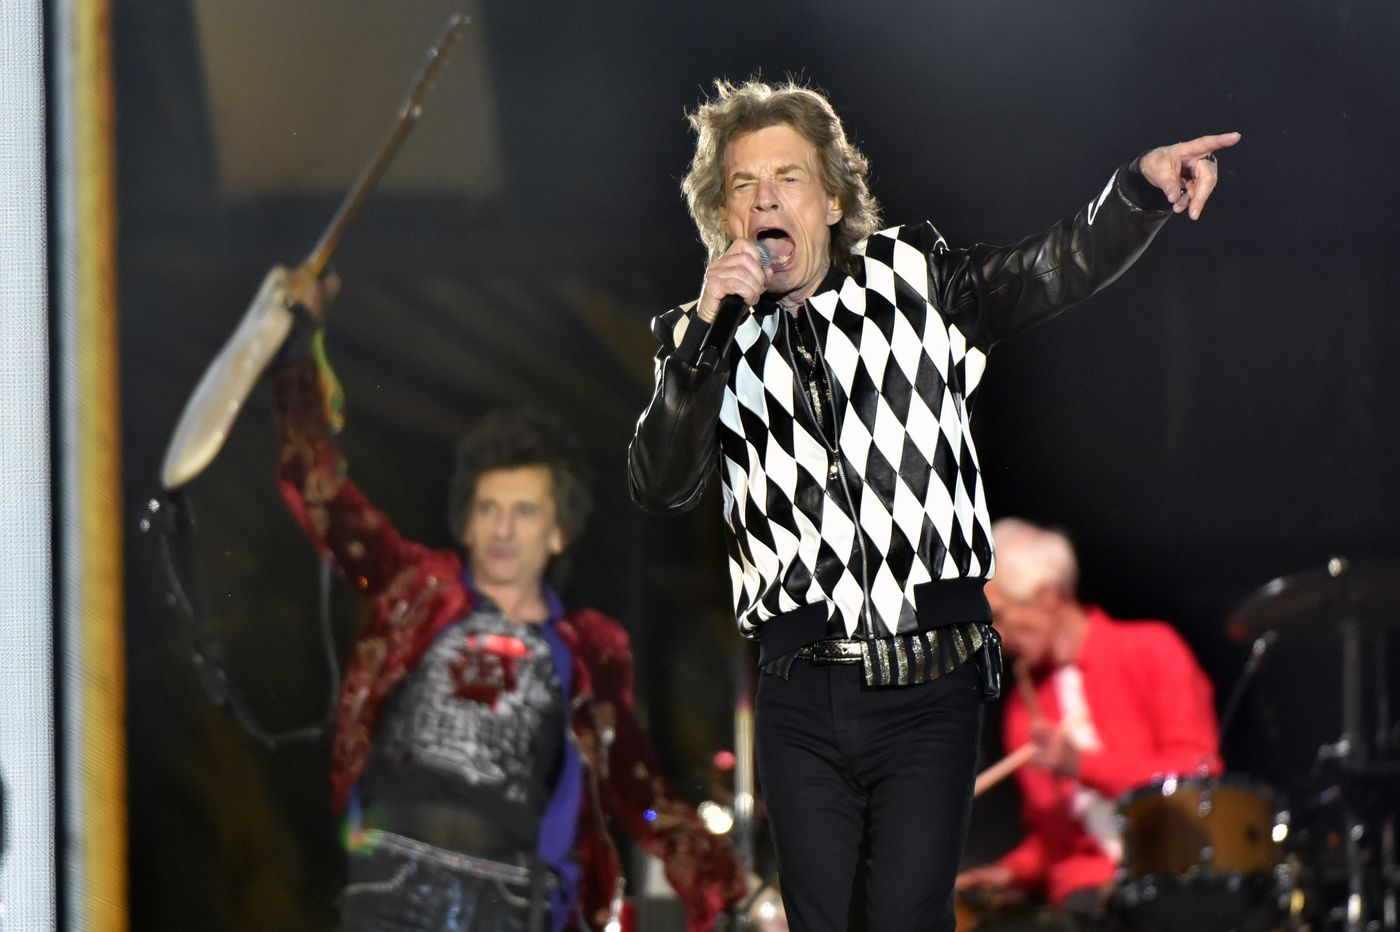 Could this be the last time? Once more with Mick Jagger and the Rolling Stones in South Philly.